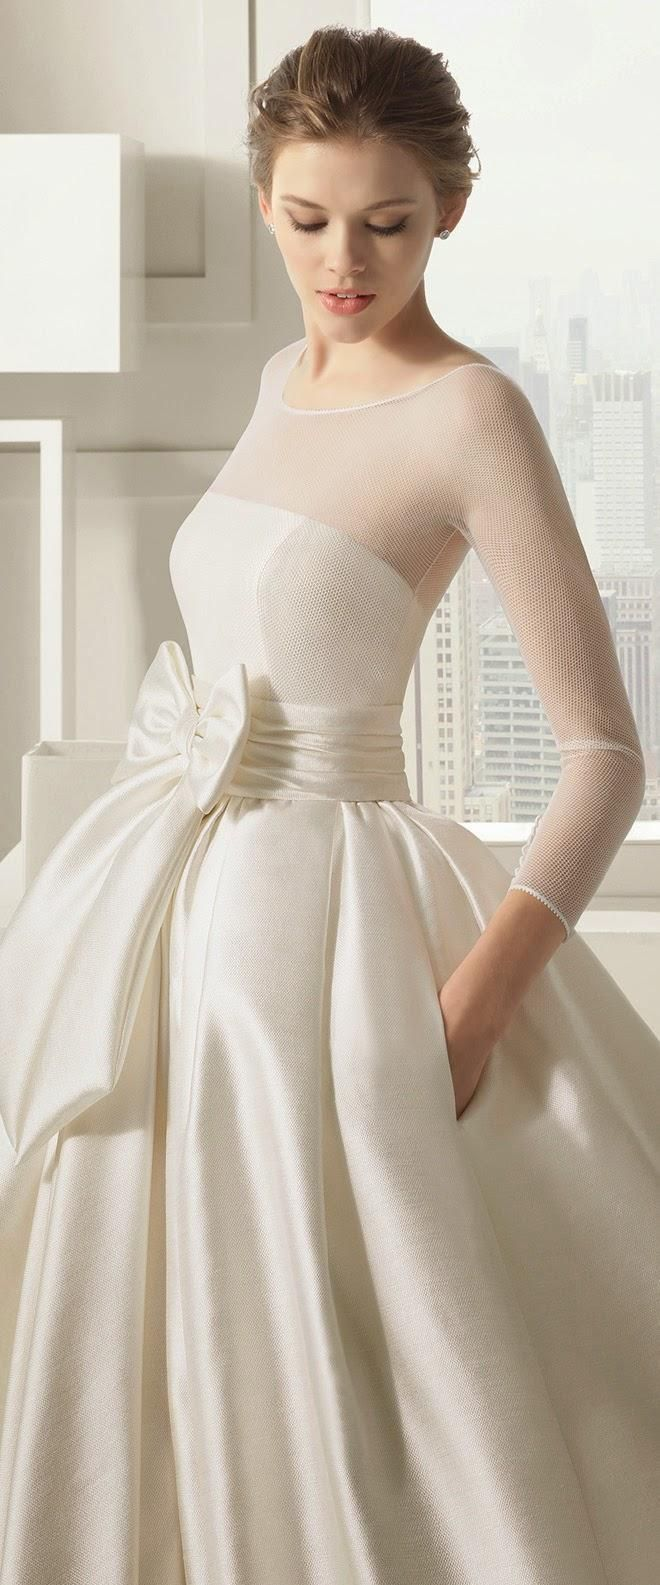 Sheer top wedding dress  Beautiful Retro Elegant Even the bow adds just the right touch